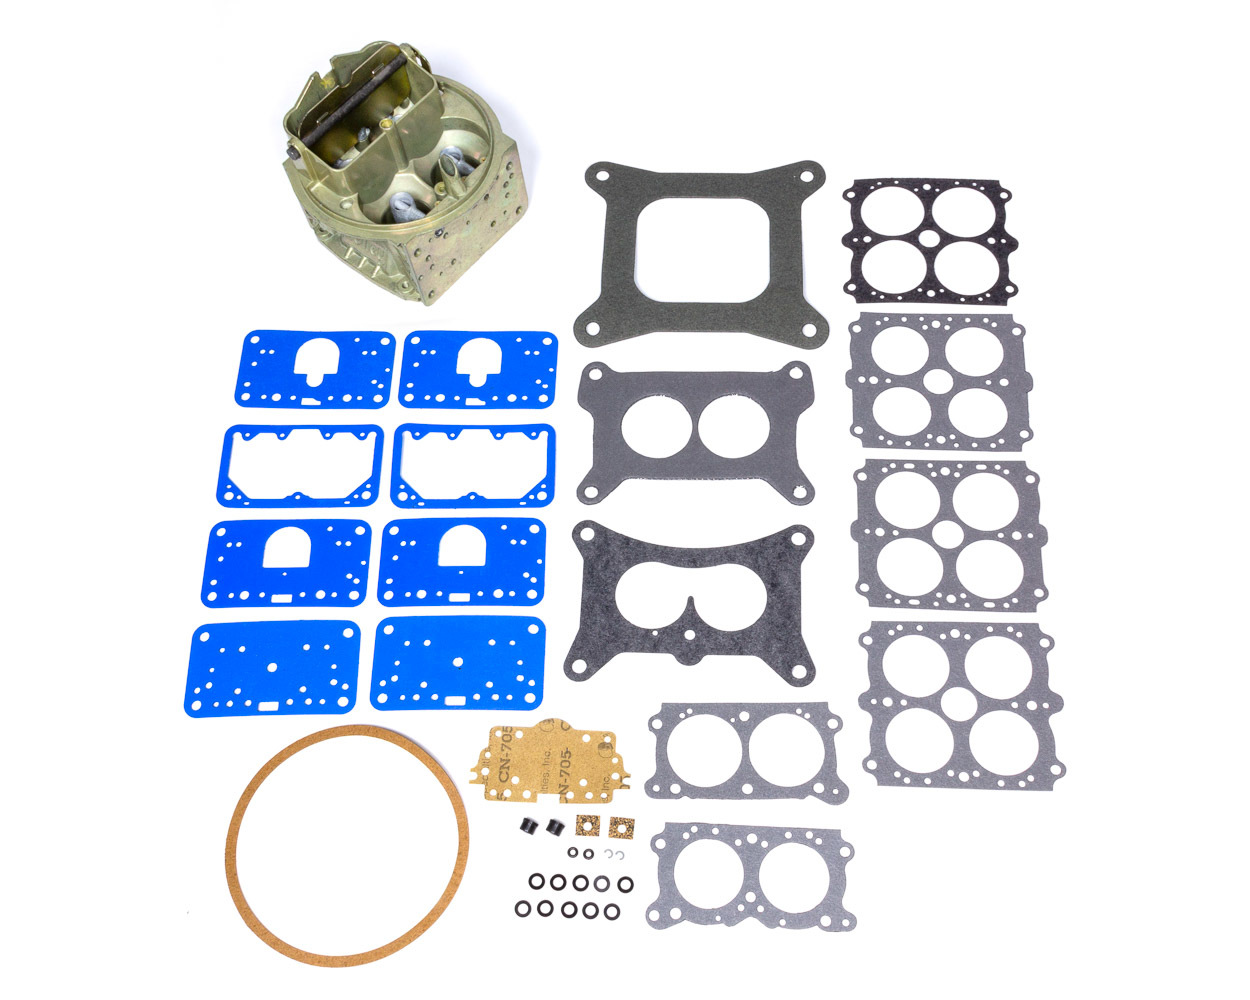 Replacement Main Body Kit for 0-1850C